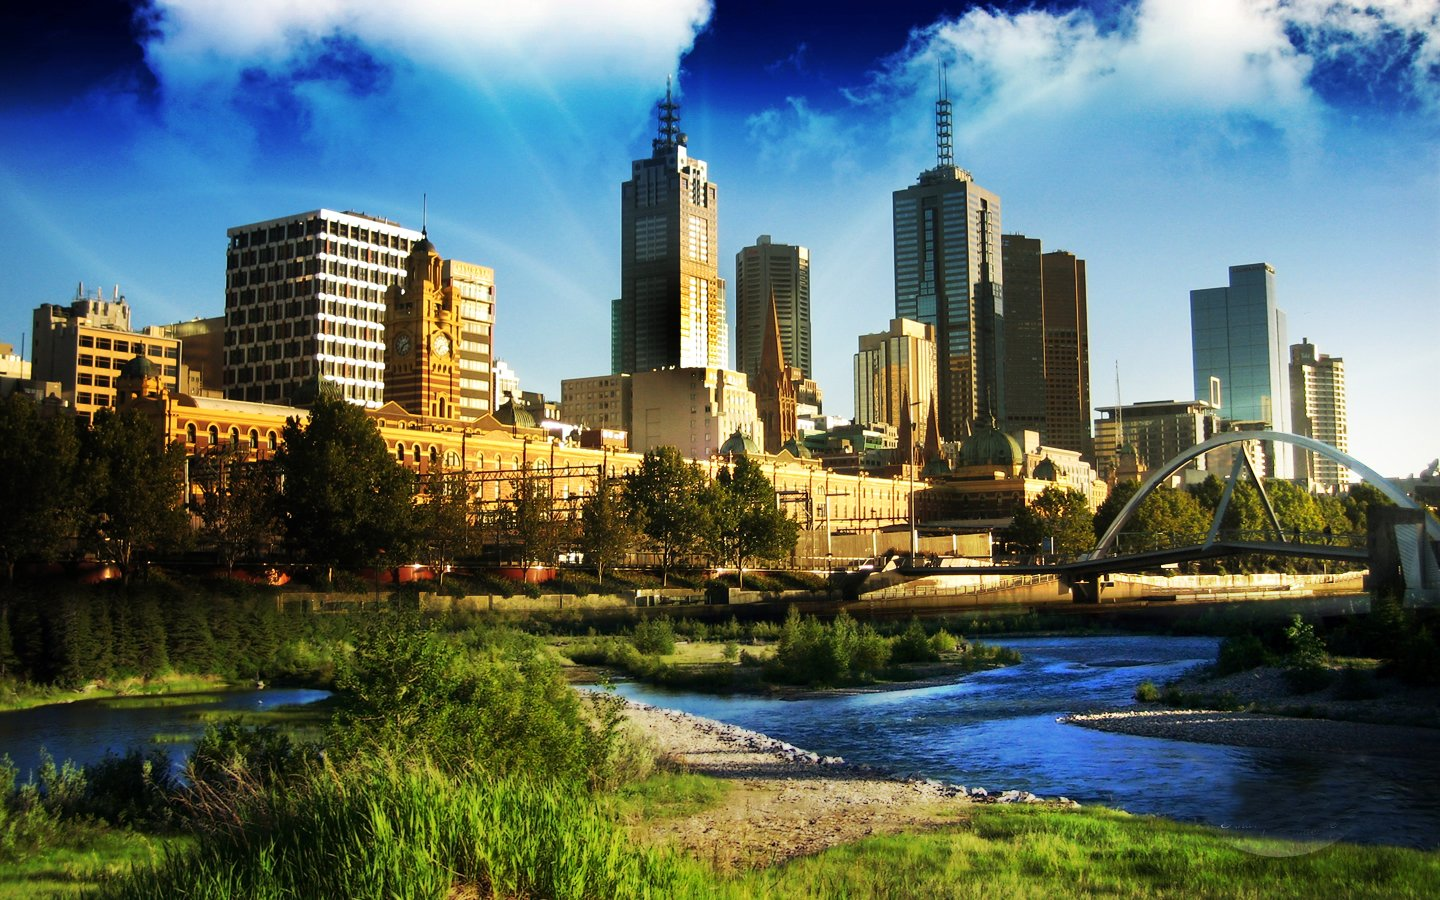 Melbourne HD City Wallpapers Points HD Wallpaper 1440x900